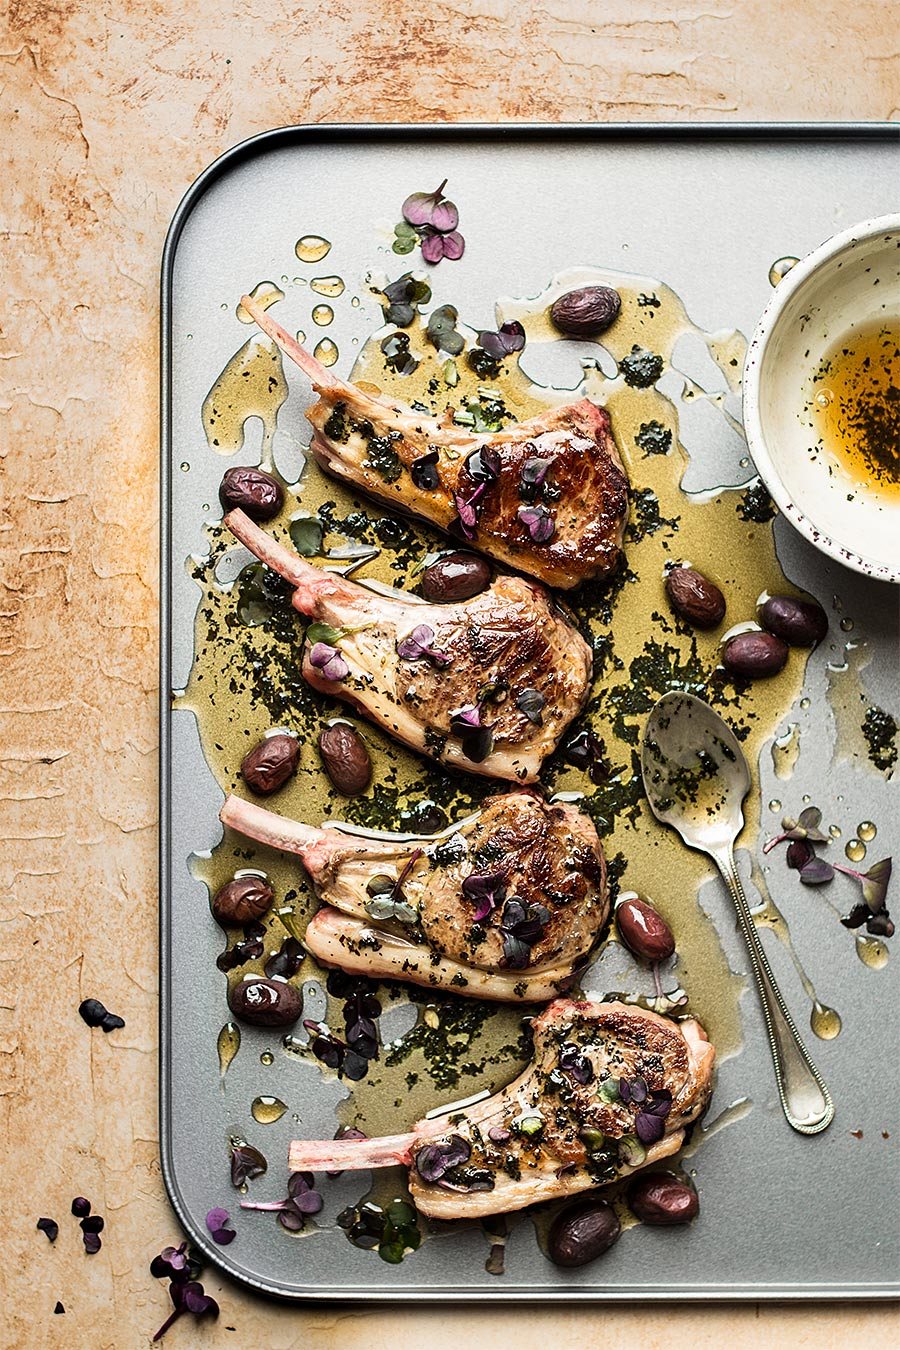 Lamb-cutlets-with-mint-sauce-and-olives-by-Laura-Domingo.jpg